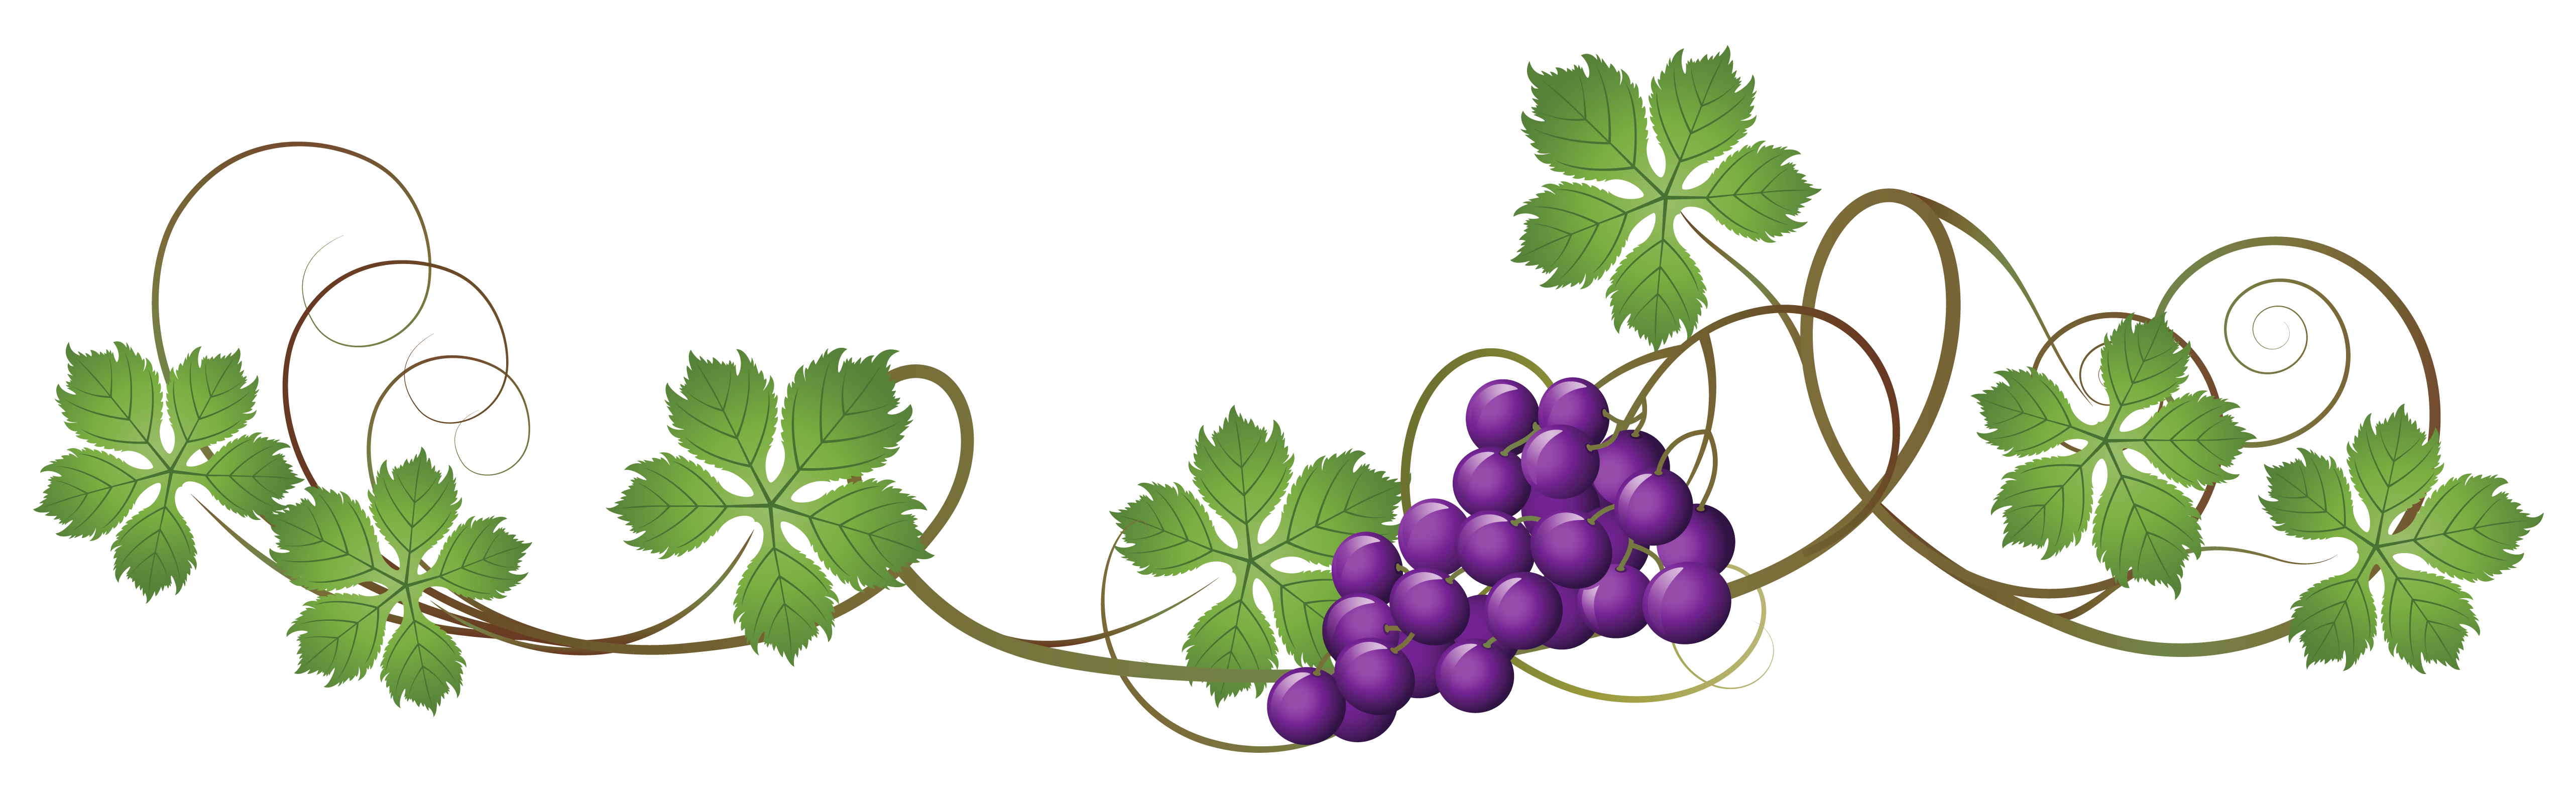 Free Grape Vine Png, Download Free Clip Art, Free Clip Art.